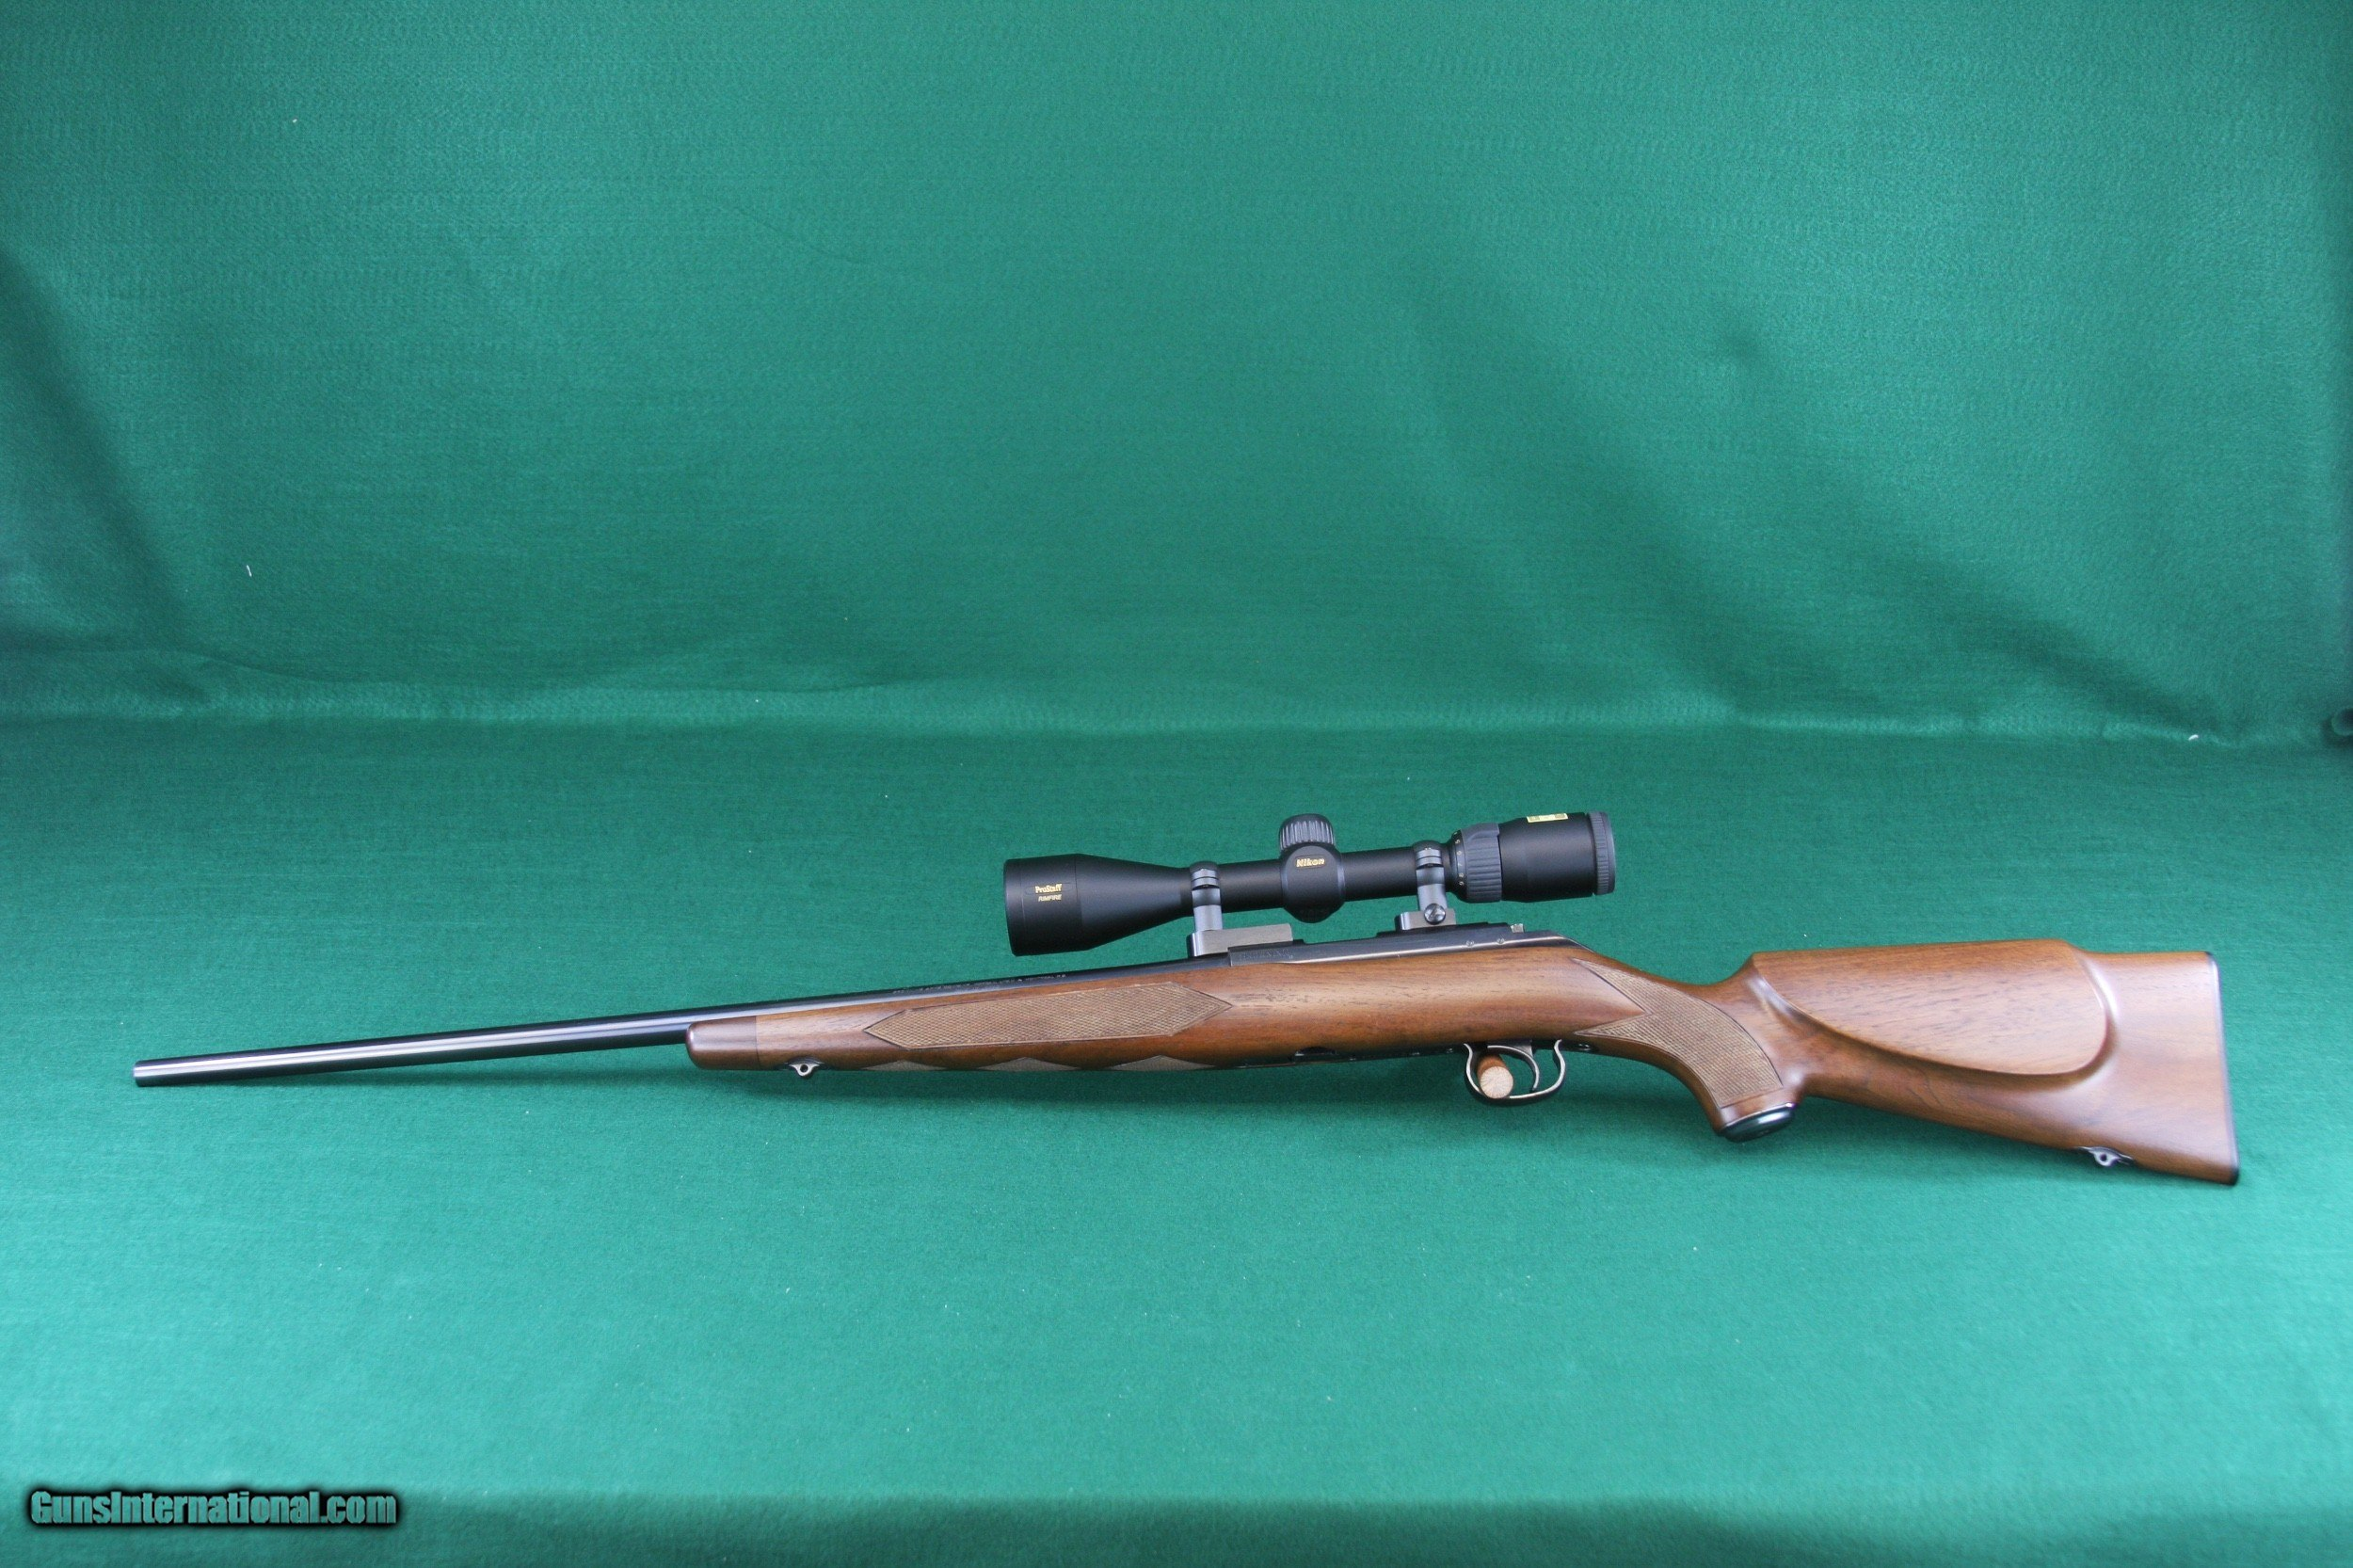 ... Browning 52 Sporter .22 LR reproduction of Winchester 52 - 6 of 20 ...